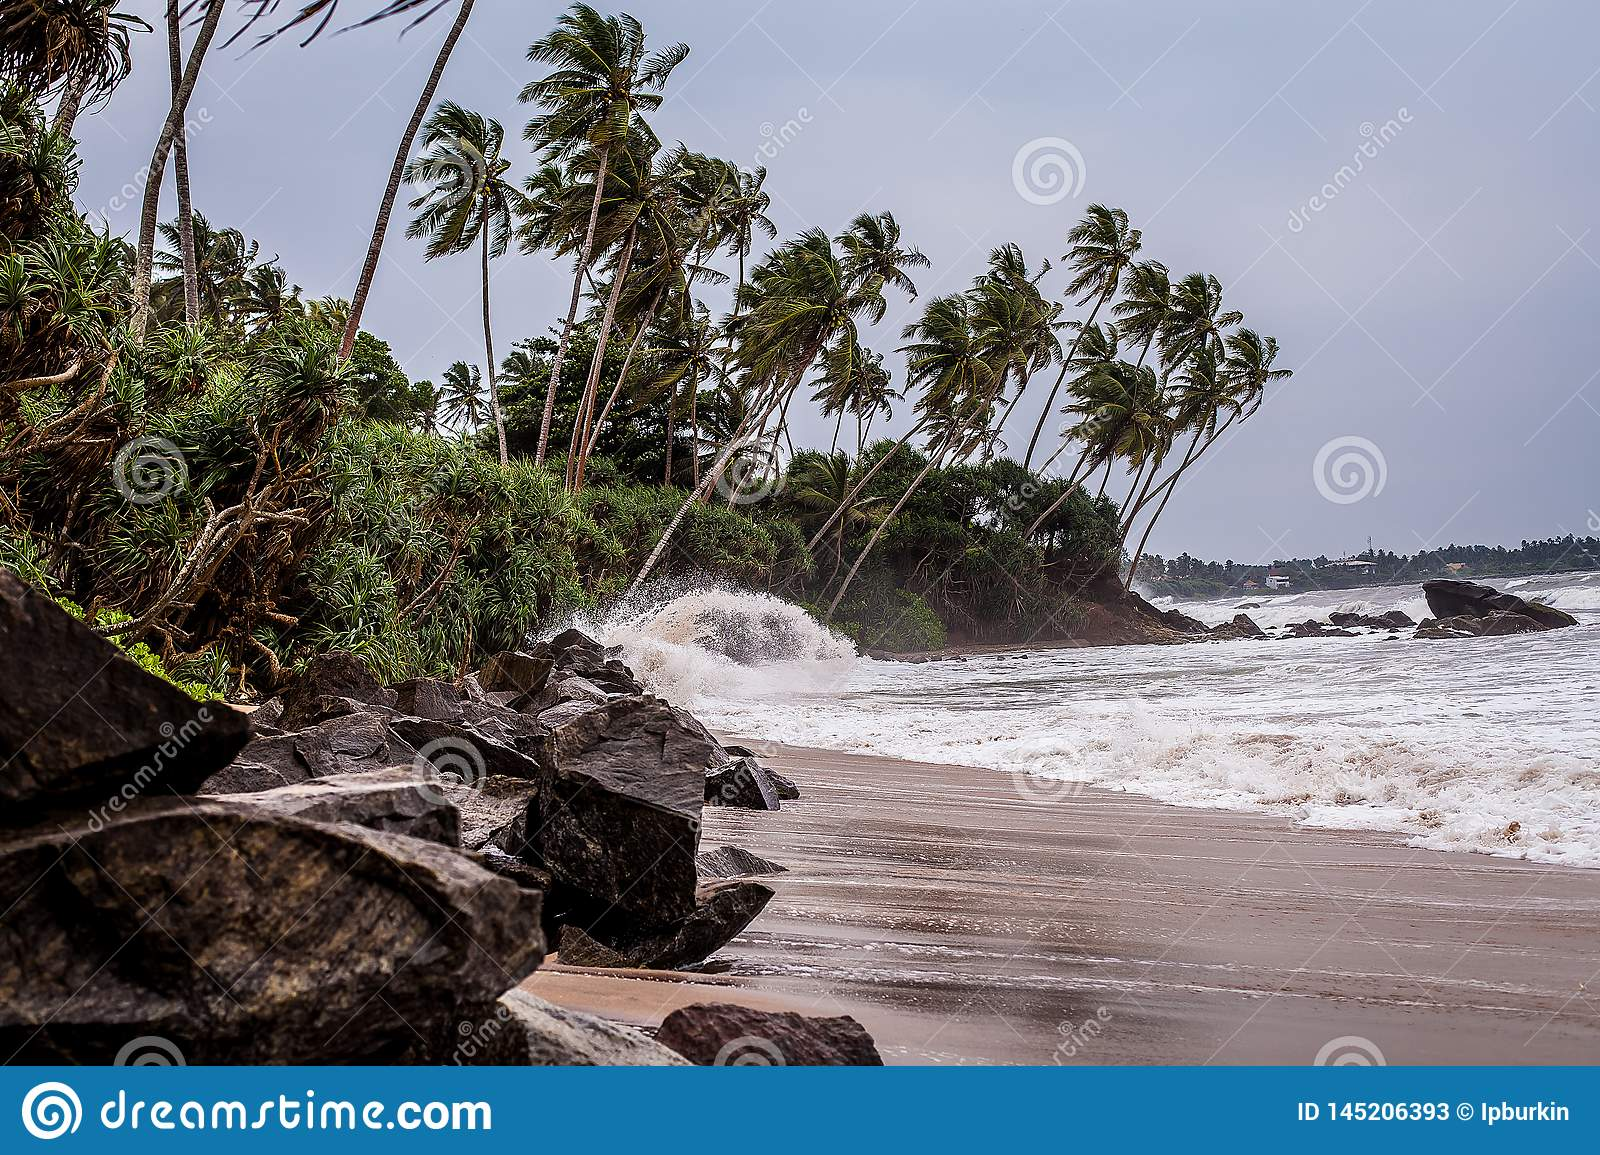 A small storm on the rocky beach of Sri Lanka. waves on the wild beach. palm grove on the Indian ocean